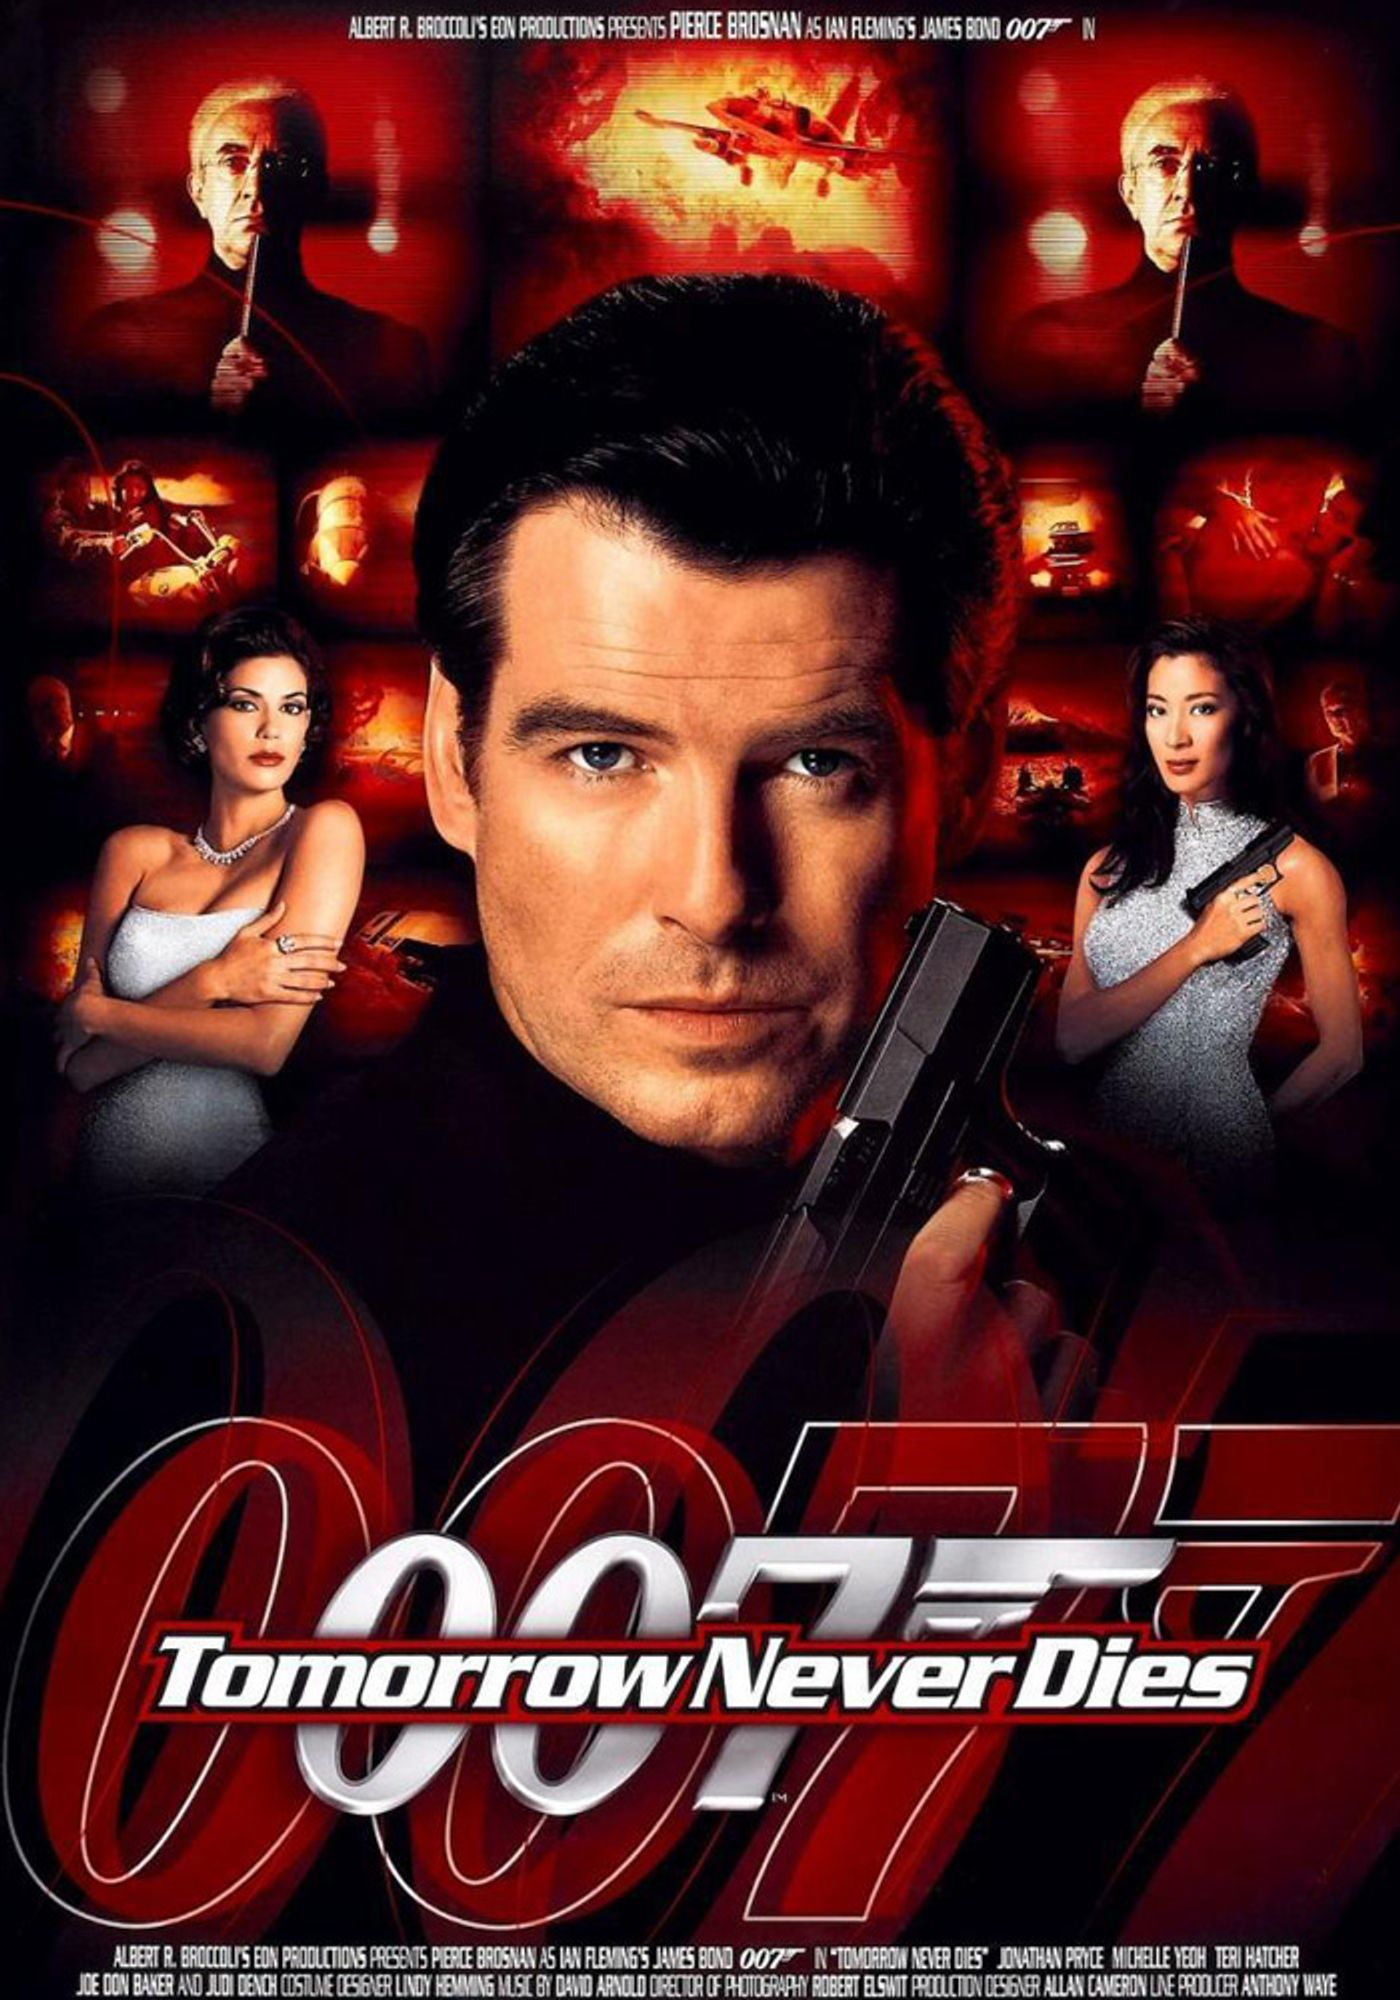 Tomorrow never dies (V.O.)